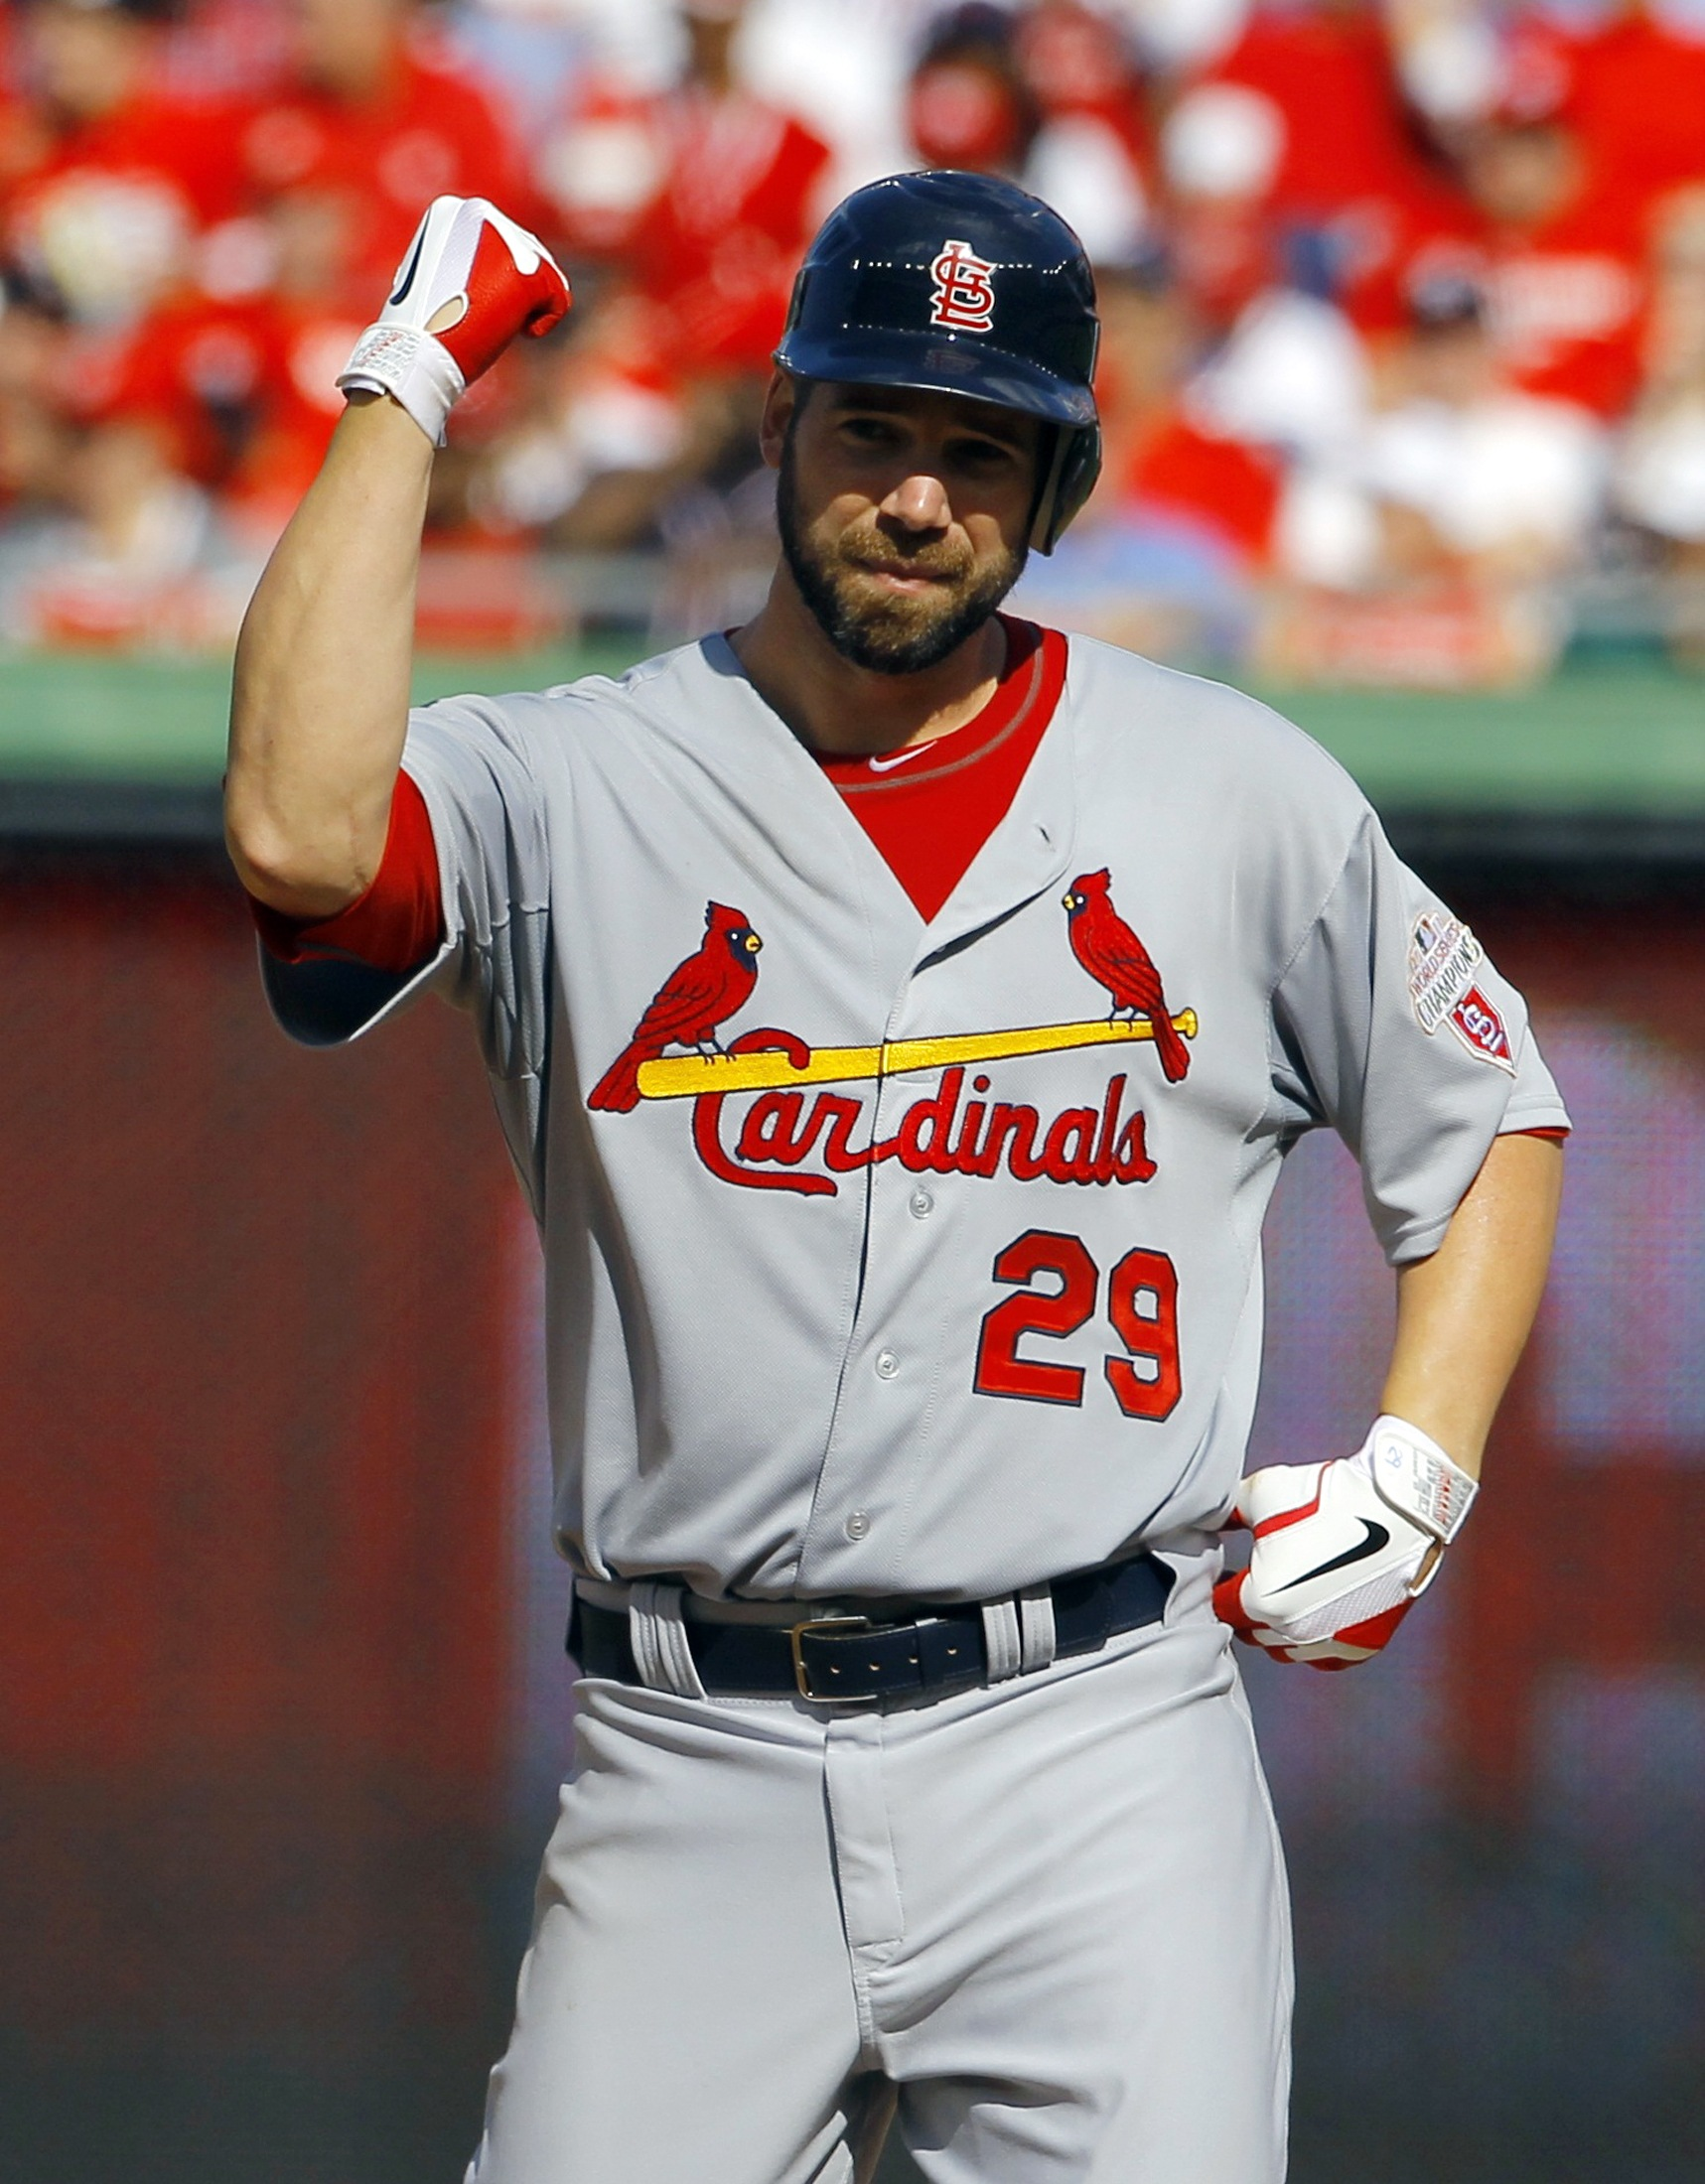 In addition to holding the Nationals in check, Chris Carpenter also had two hits. (Reuters)